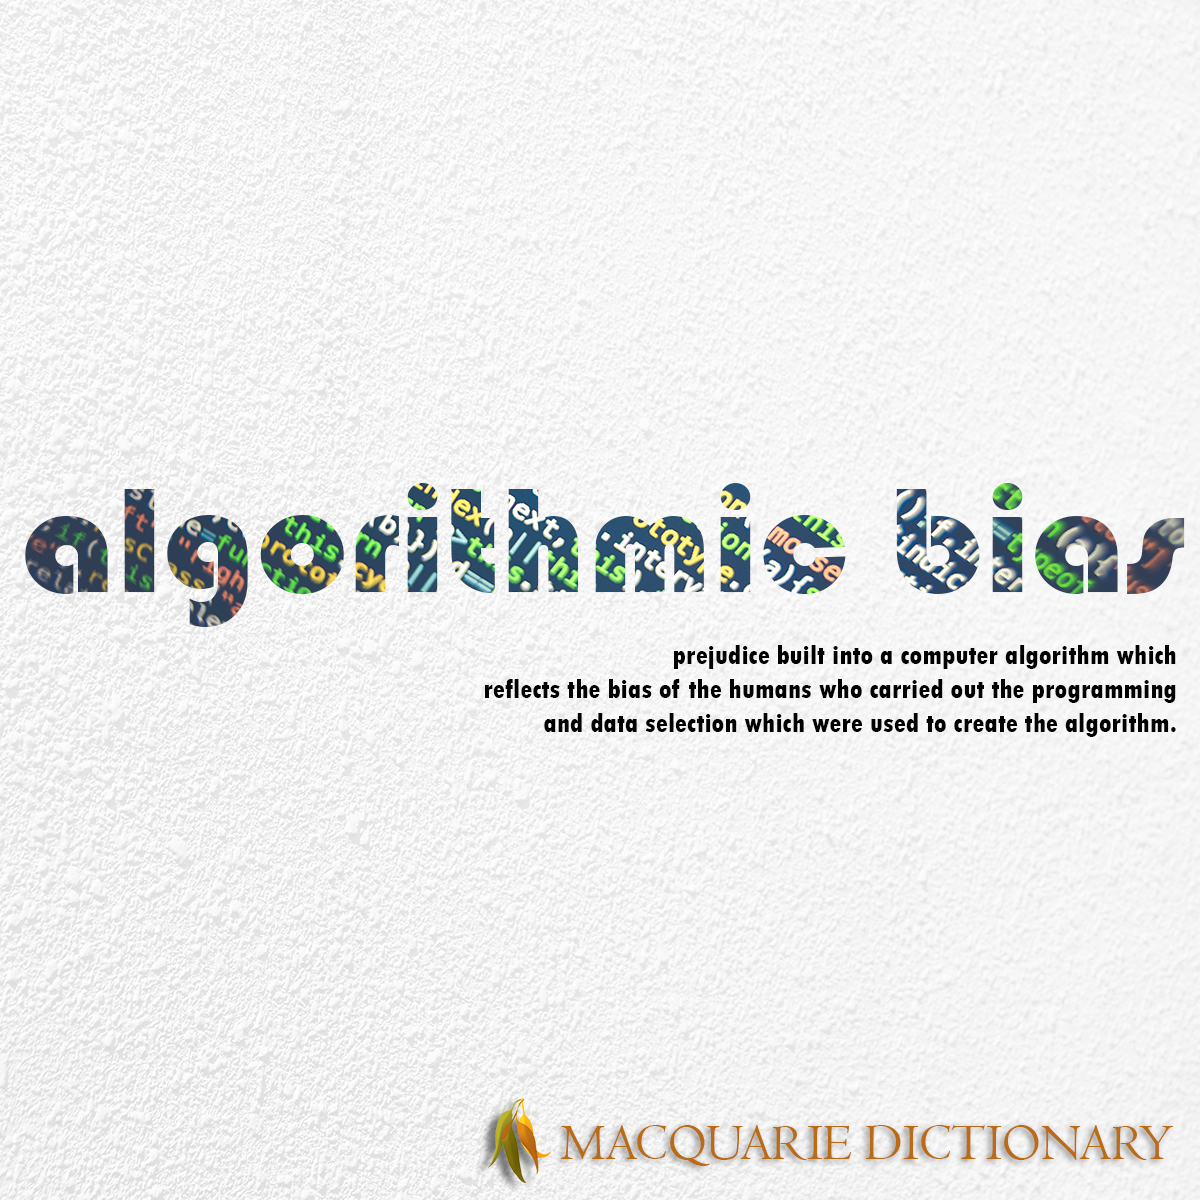 Image of Macquarie Dictionary Word of the Year - algorithmic bias - prejudice built into a computer algorithm which reflects the bias of the humans who carried out the programming and data selection which were used to create the algorithm.